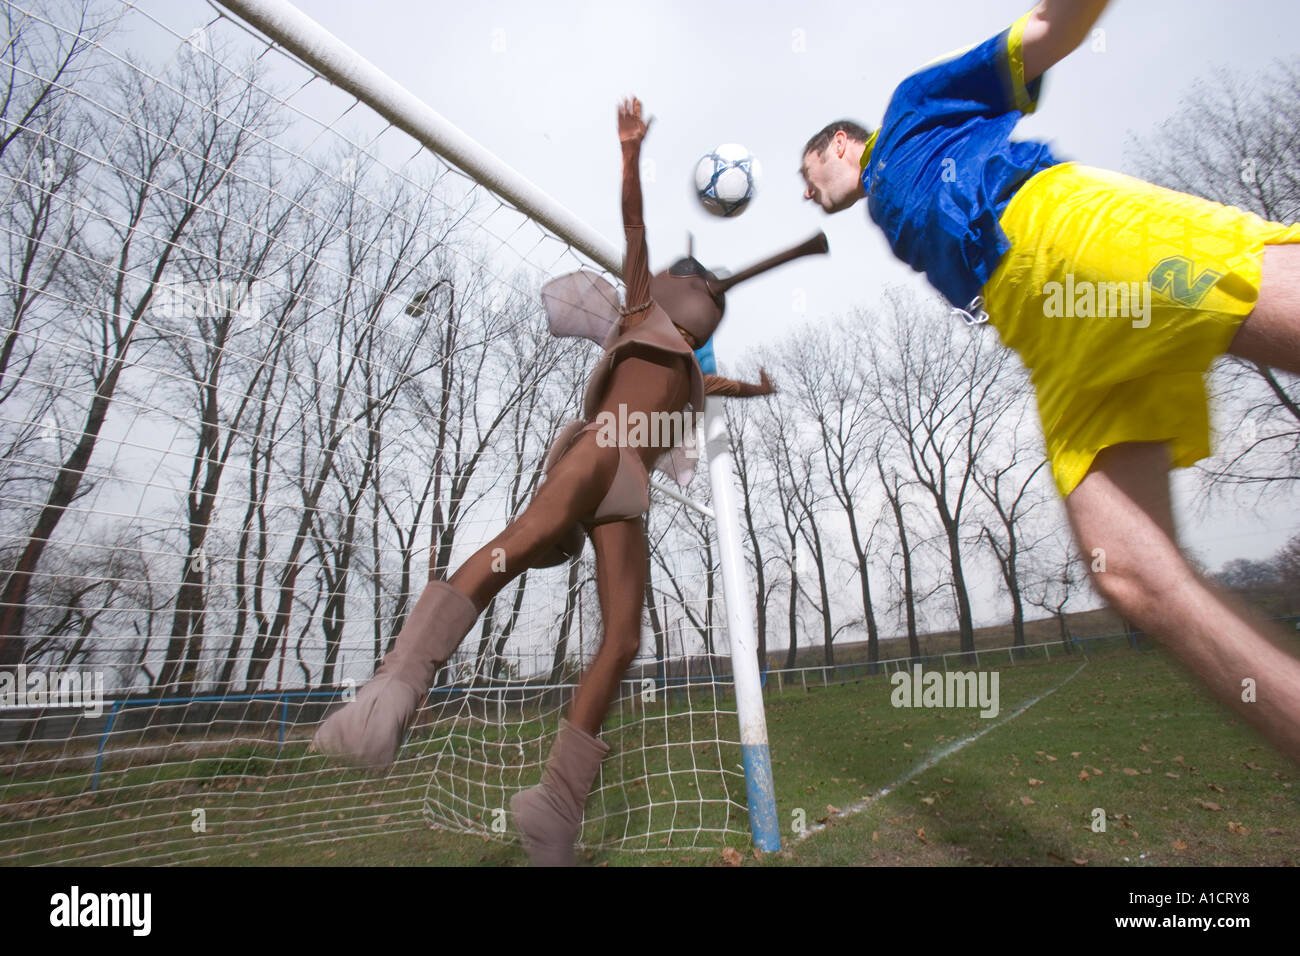 Football player in the air heading the ball to the goal post defended by a goal keeper in mosquito costume - Stock Image